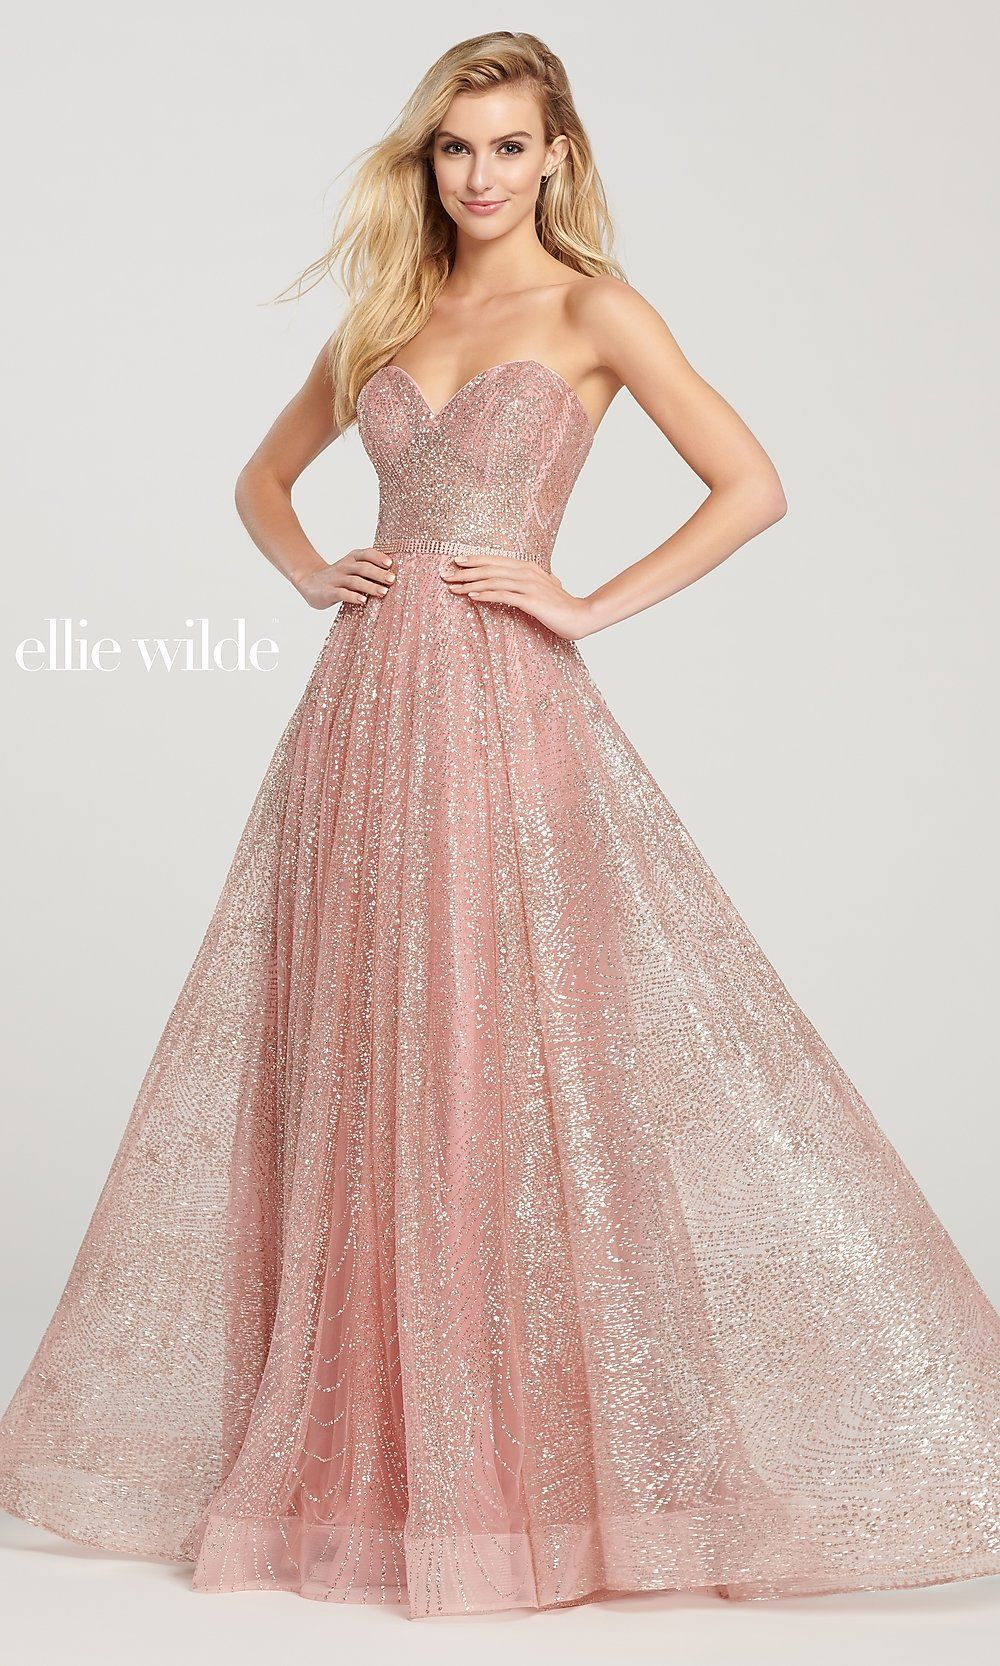 Glitter A Line Prom Dress With A Sheer Bodice Gorgeous Prom Dresses Prom Dresses Sleeveless Prom Dresses [ 1666 x 1000 Pixel ]